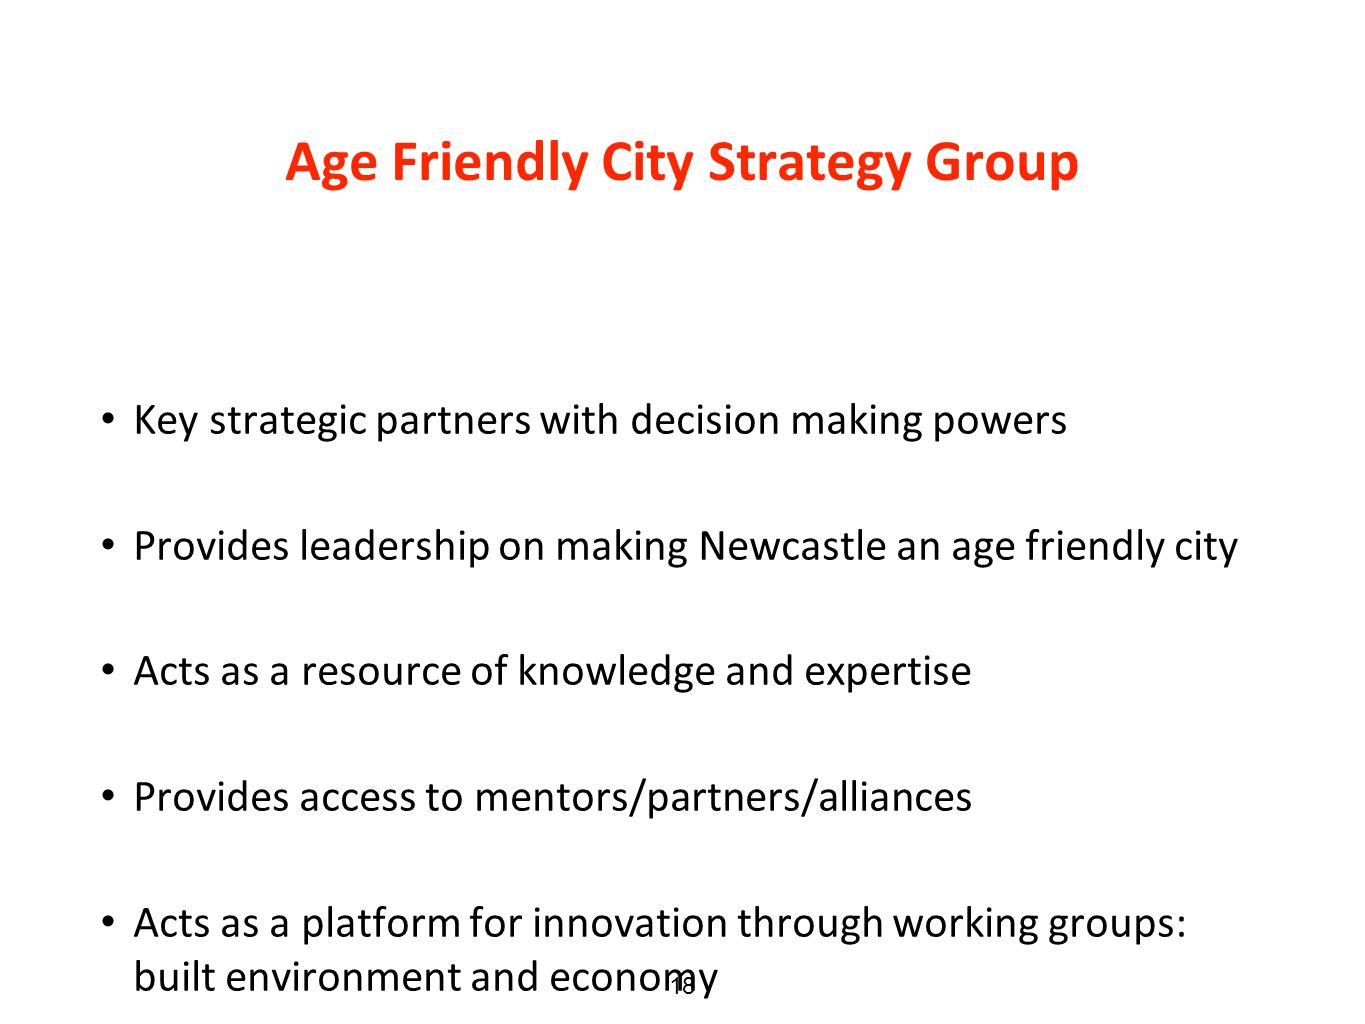 Age Friendly City Strategy Group Key strategic partners with decision making powers Provides leadership on making Newcastle an age friendly city Acts as a resource of knowledge and expertise Provides access to mentors/partners/alliances Acts as a platform for innovation through working groups: built environment and economy 18